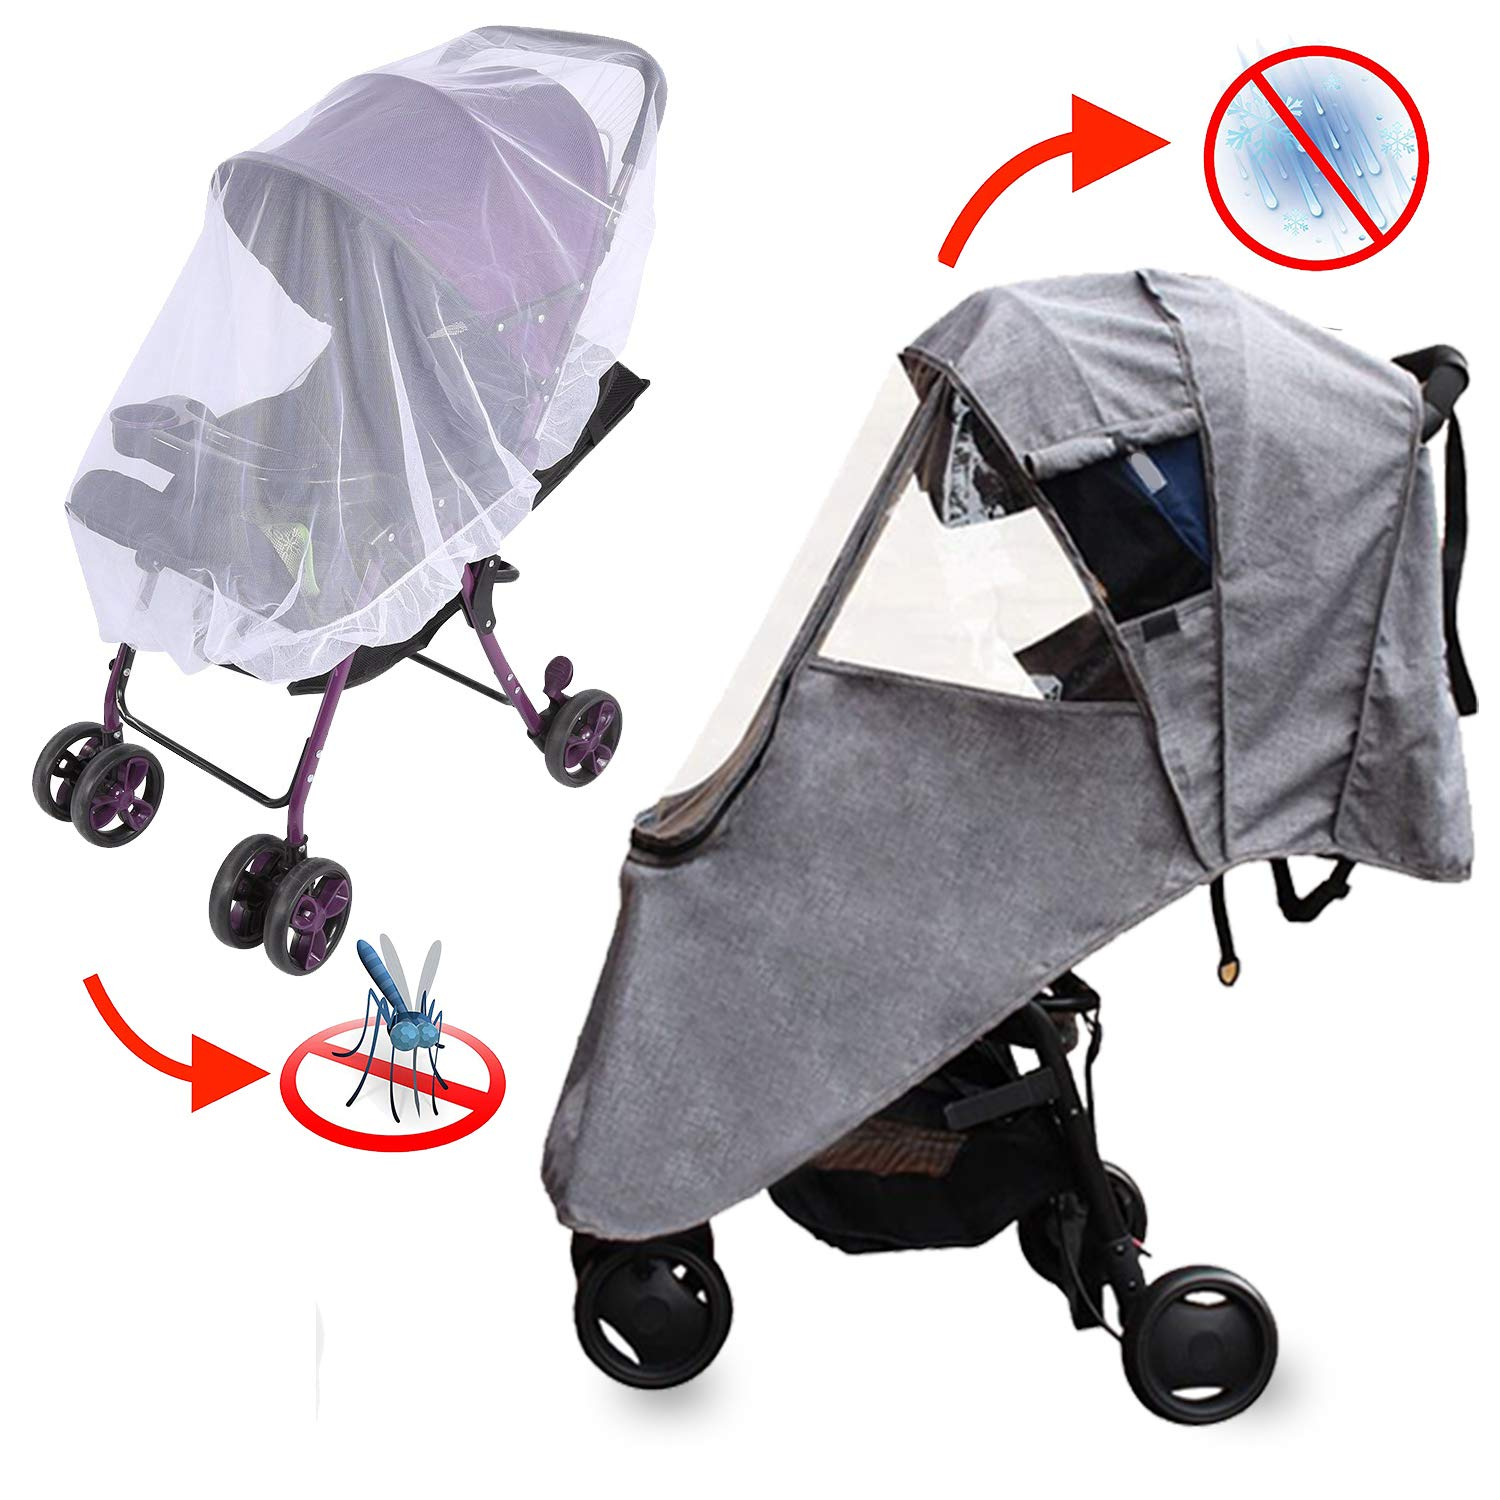 Rain Cover for Stroller - Mosquito Net(2-Piece Set), Apsung Universal Baby Travel Stroller Rain Cover Waterproof, Windproof Protection, Outdoor Use with Air Holes-Gray